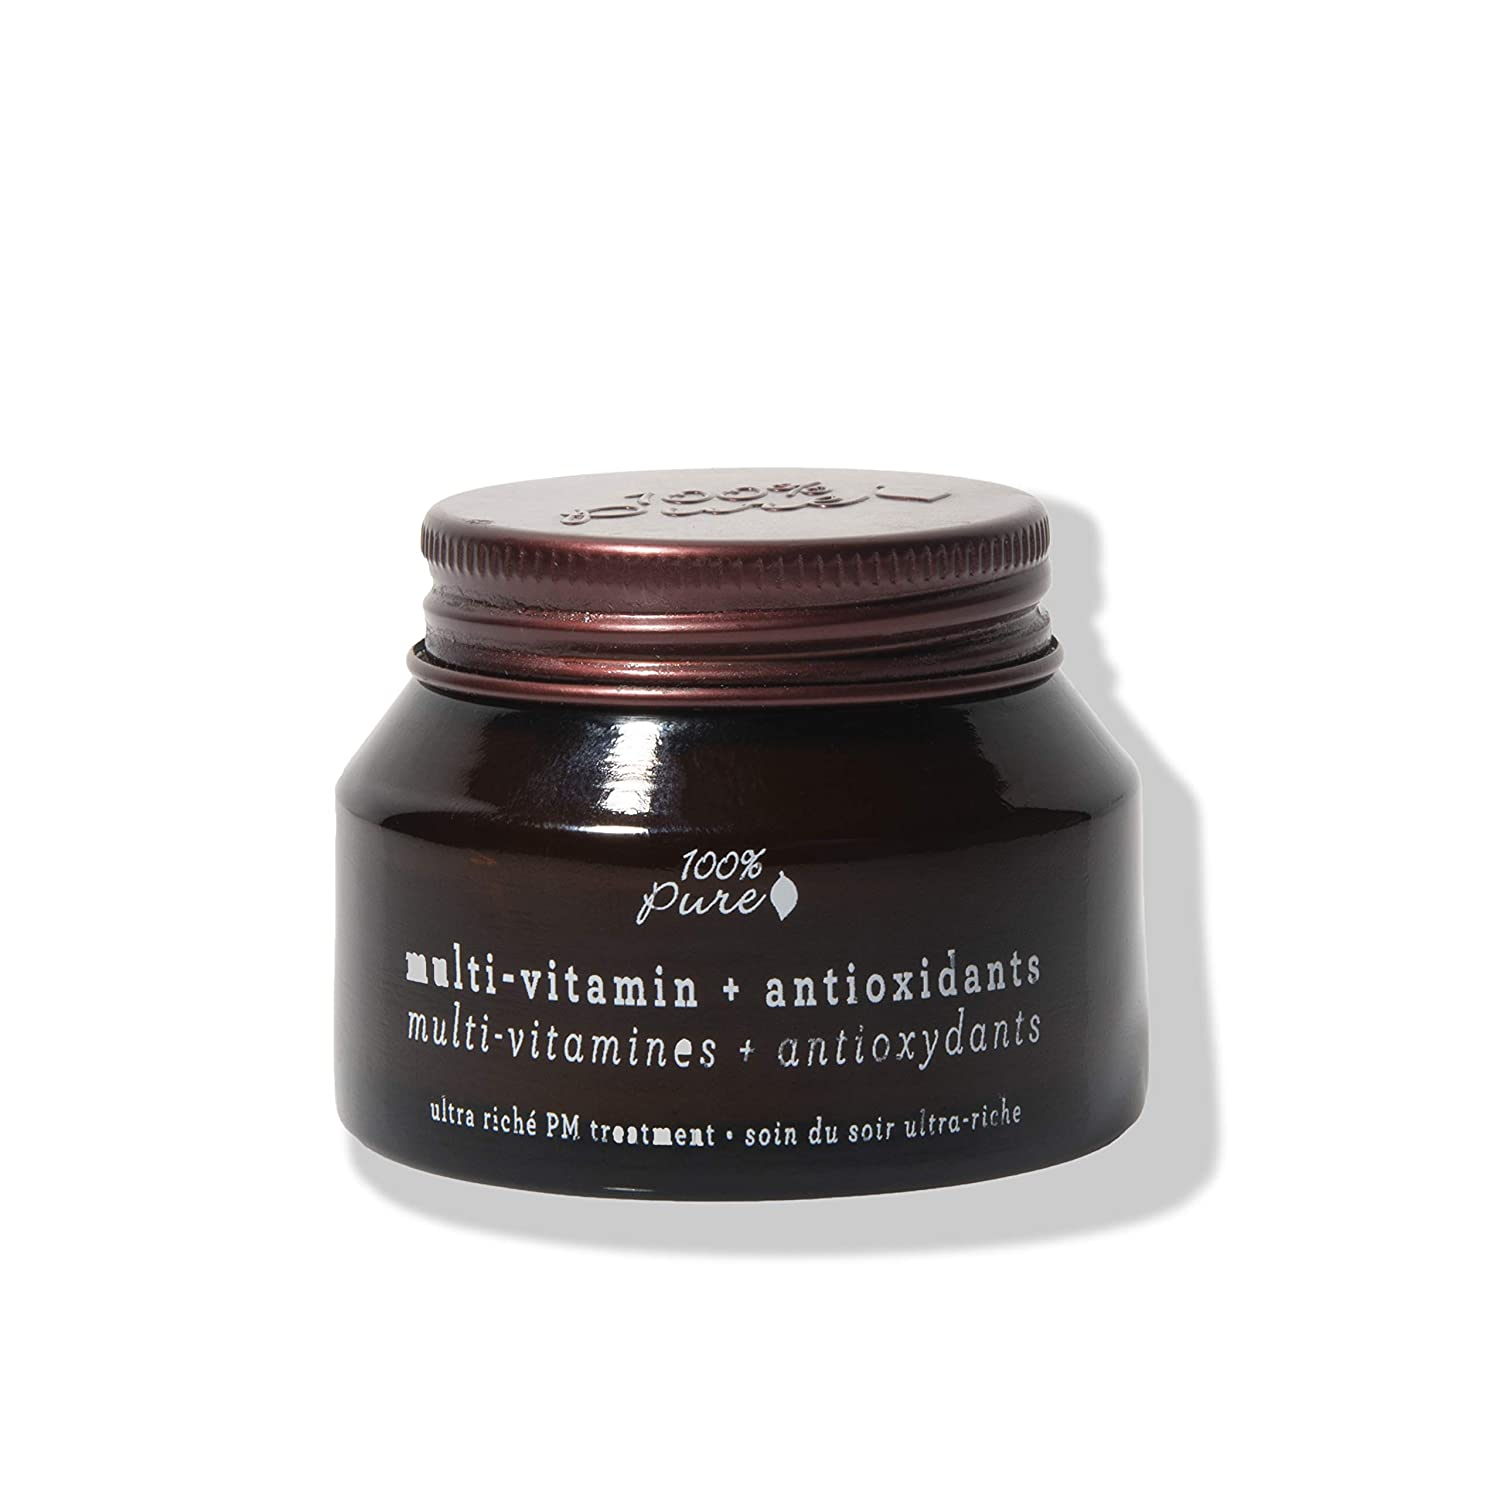 100% Pure Multi-Vitamin + Antioxidants Ultra Riche PM Treatment - 1.5 oz